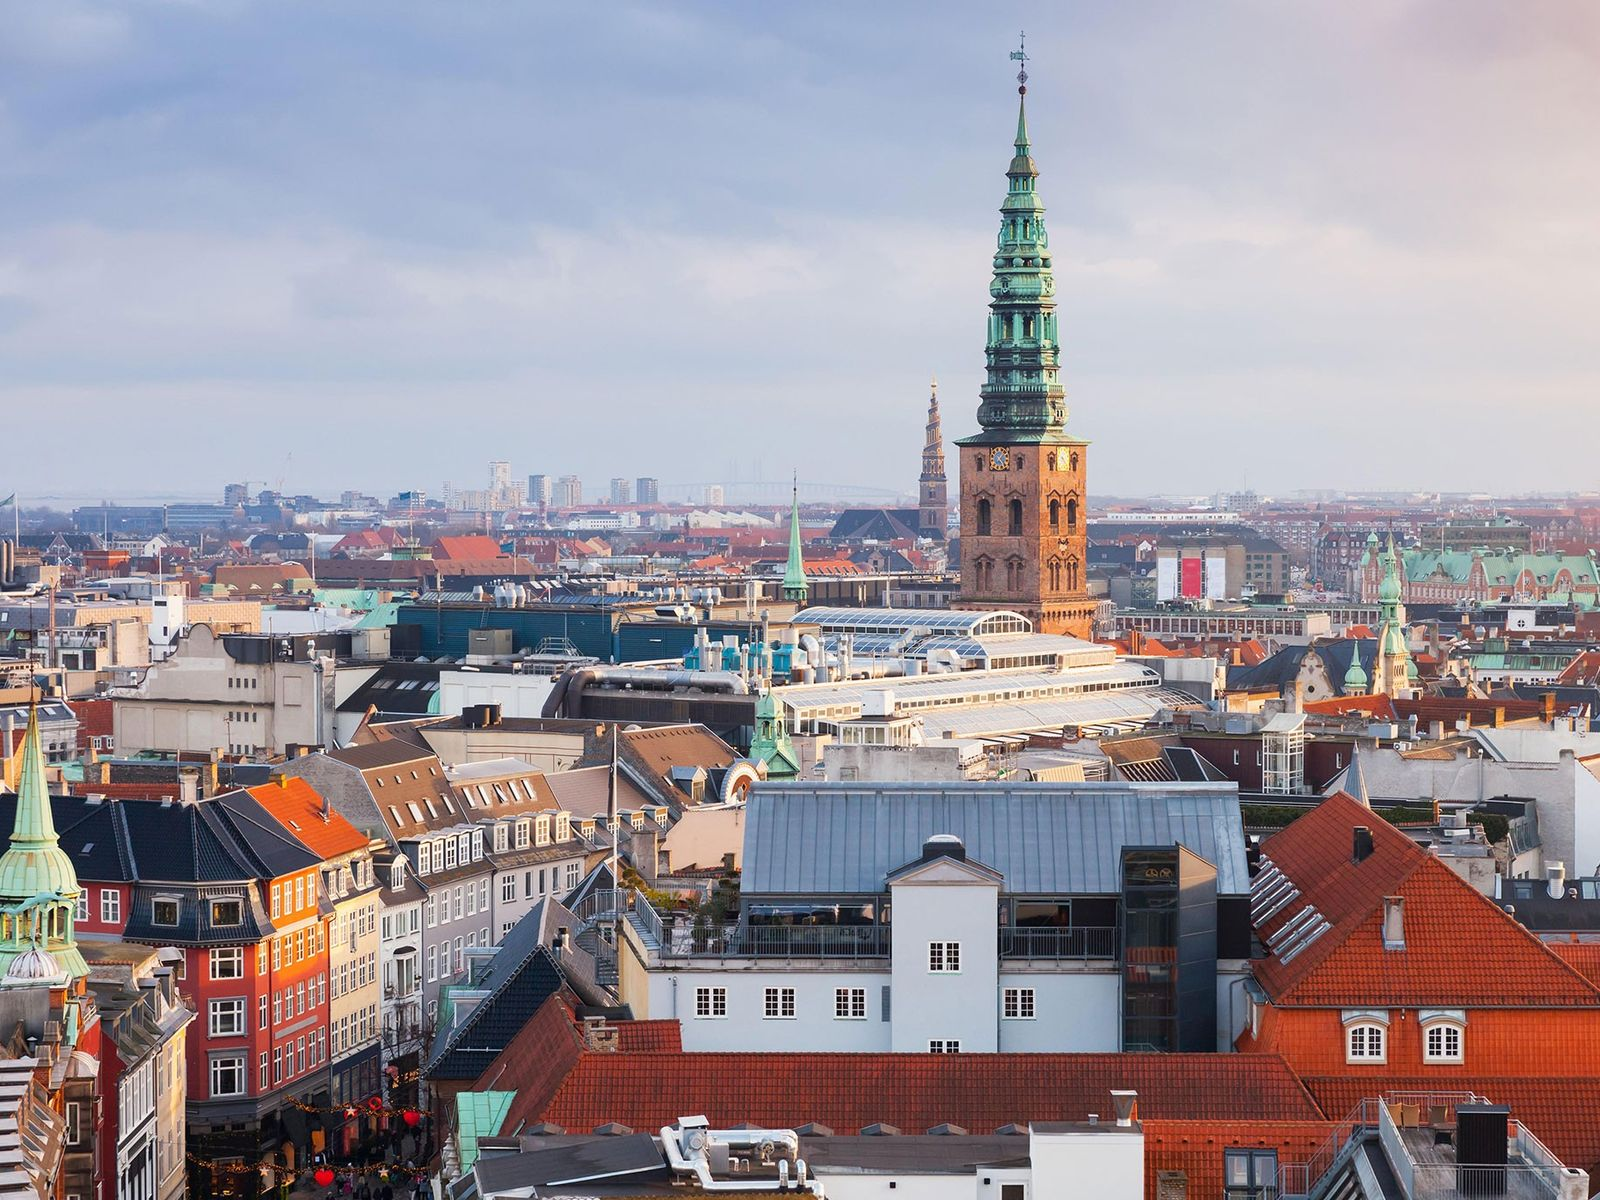 Anyone can experience the spirit of hygge on a trip to Copenhagen.